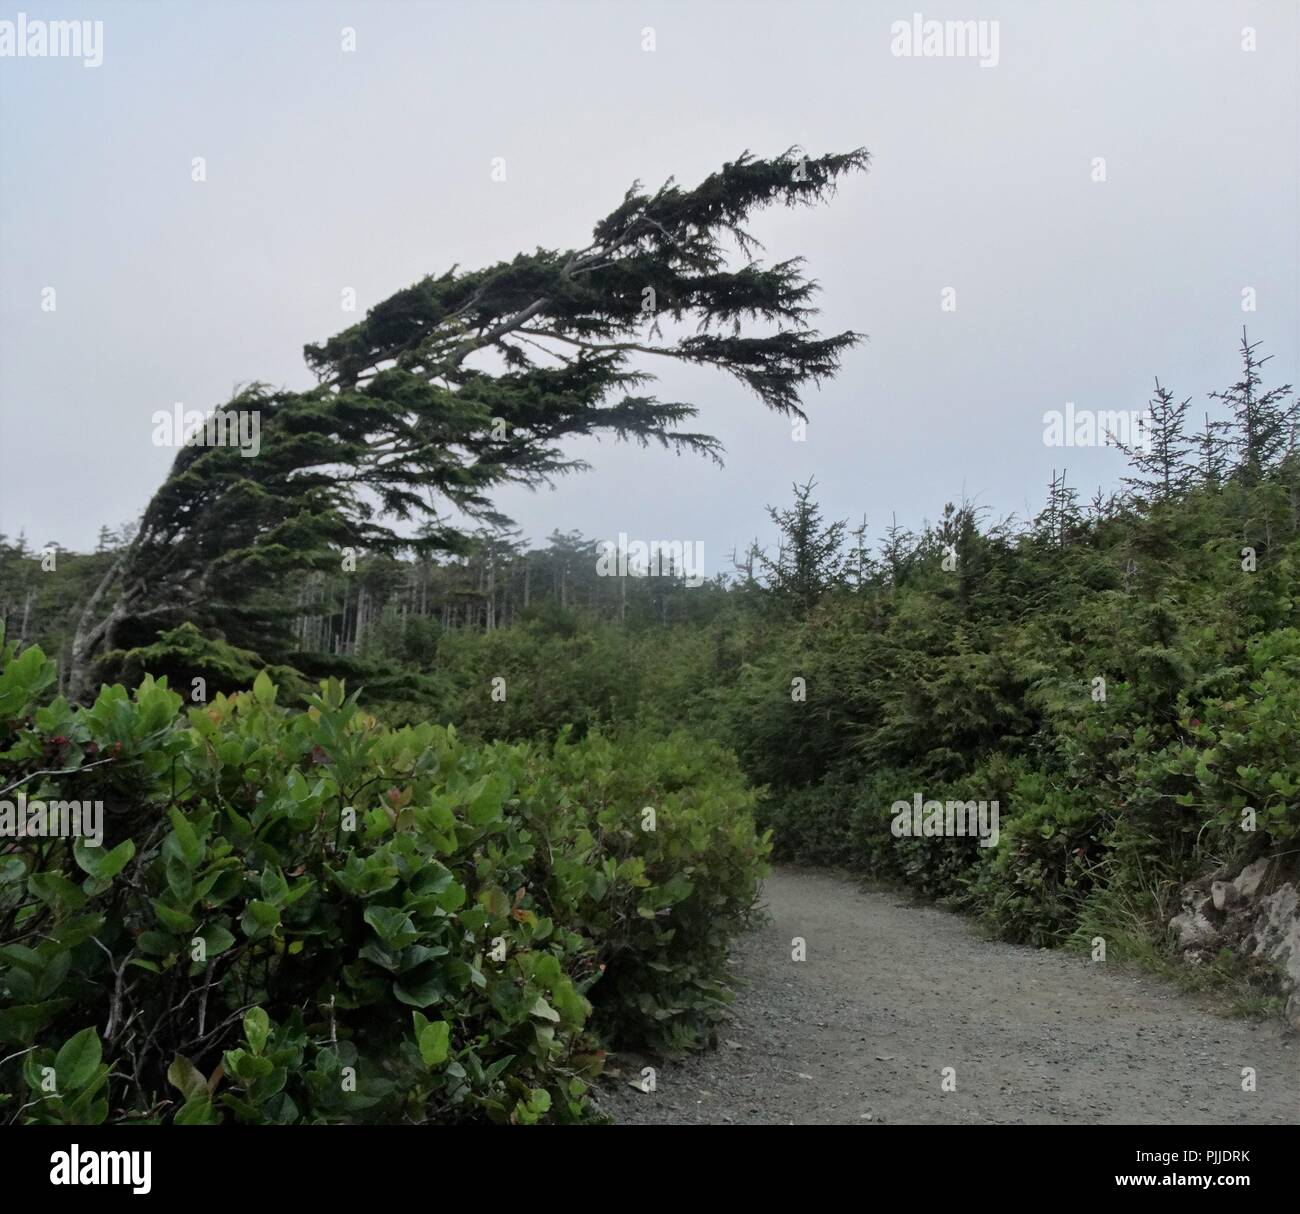 Taken to capture the wild and windy conditions of the far west reaches of British Columbia's Ucluelet, on the Pacific Ocean side of Vancouver Island. - Stock Image